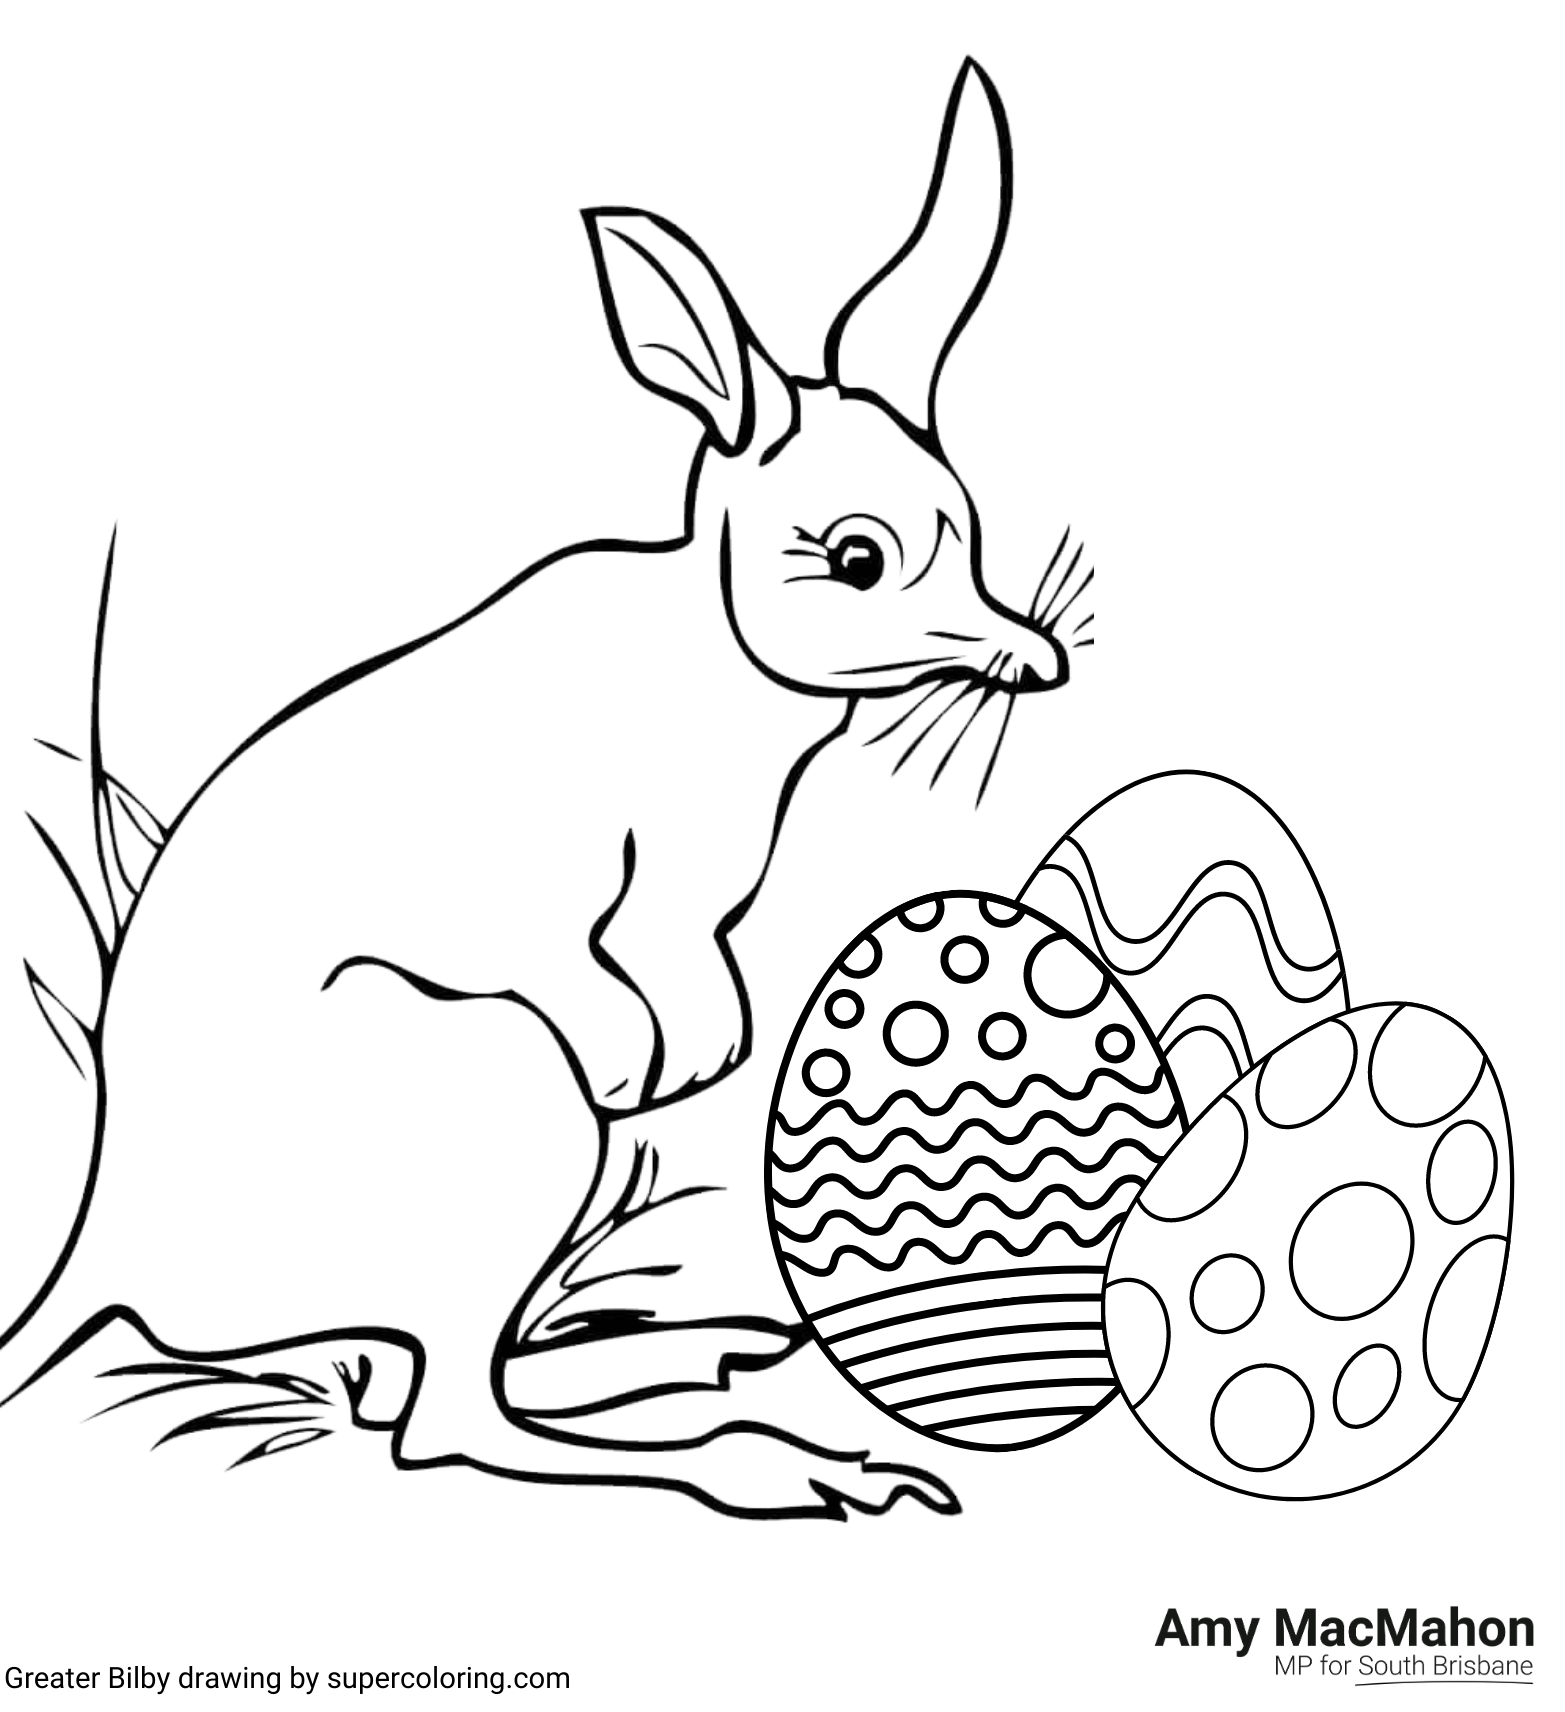 Greater_Bilby_drawing_by_http___www.supercoloring.com_.png